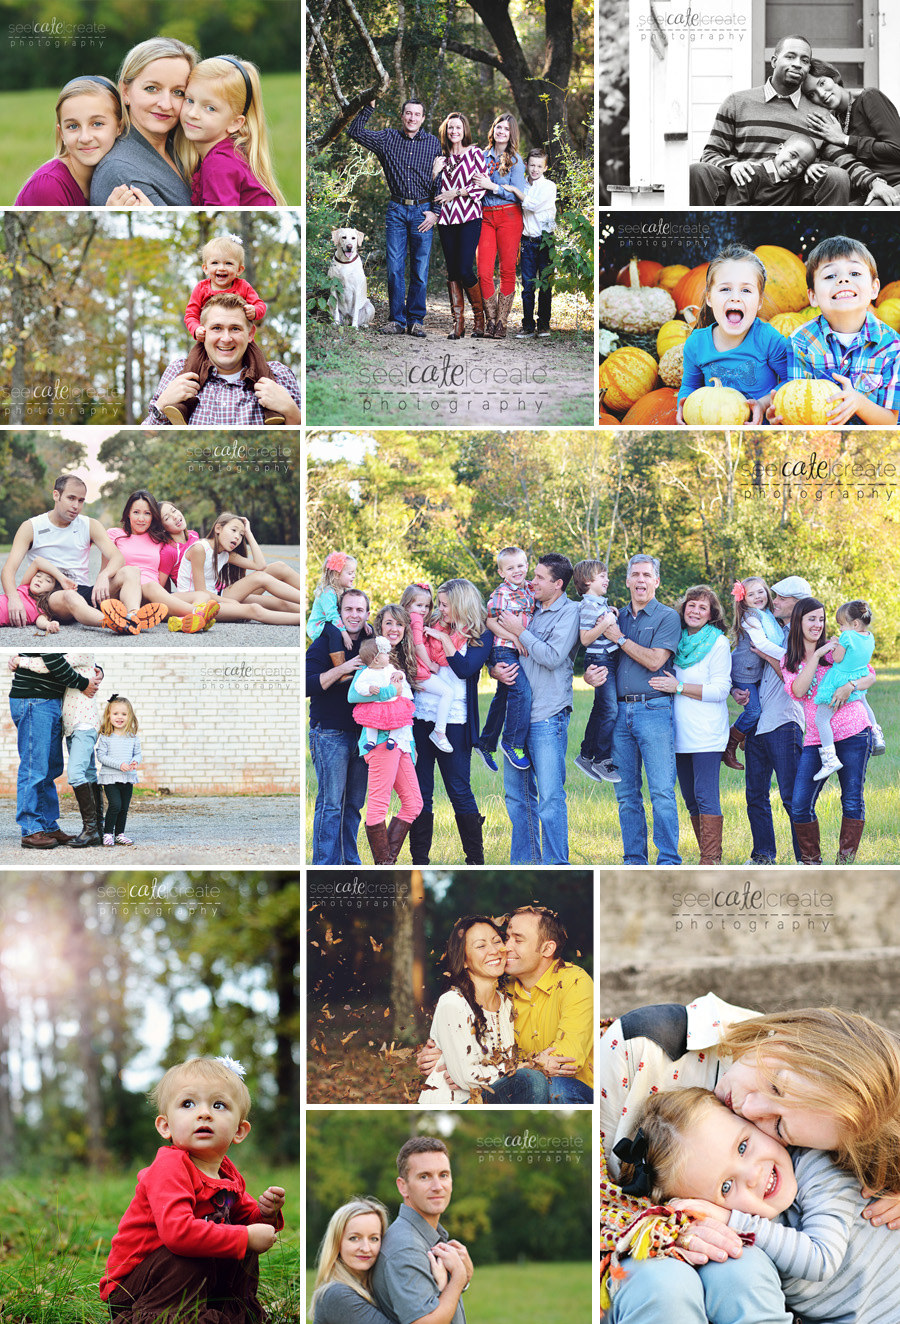 Fall Family Photo shoots